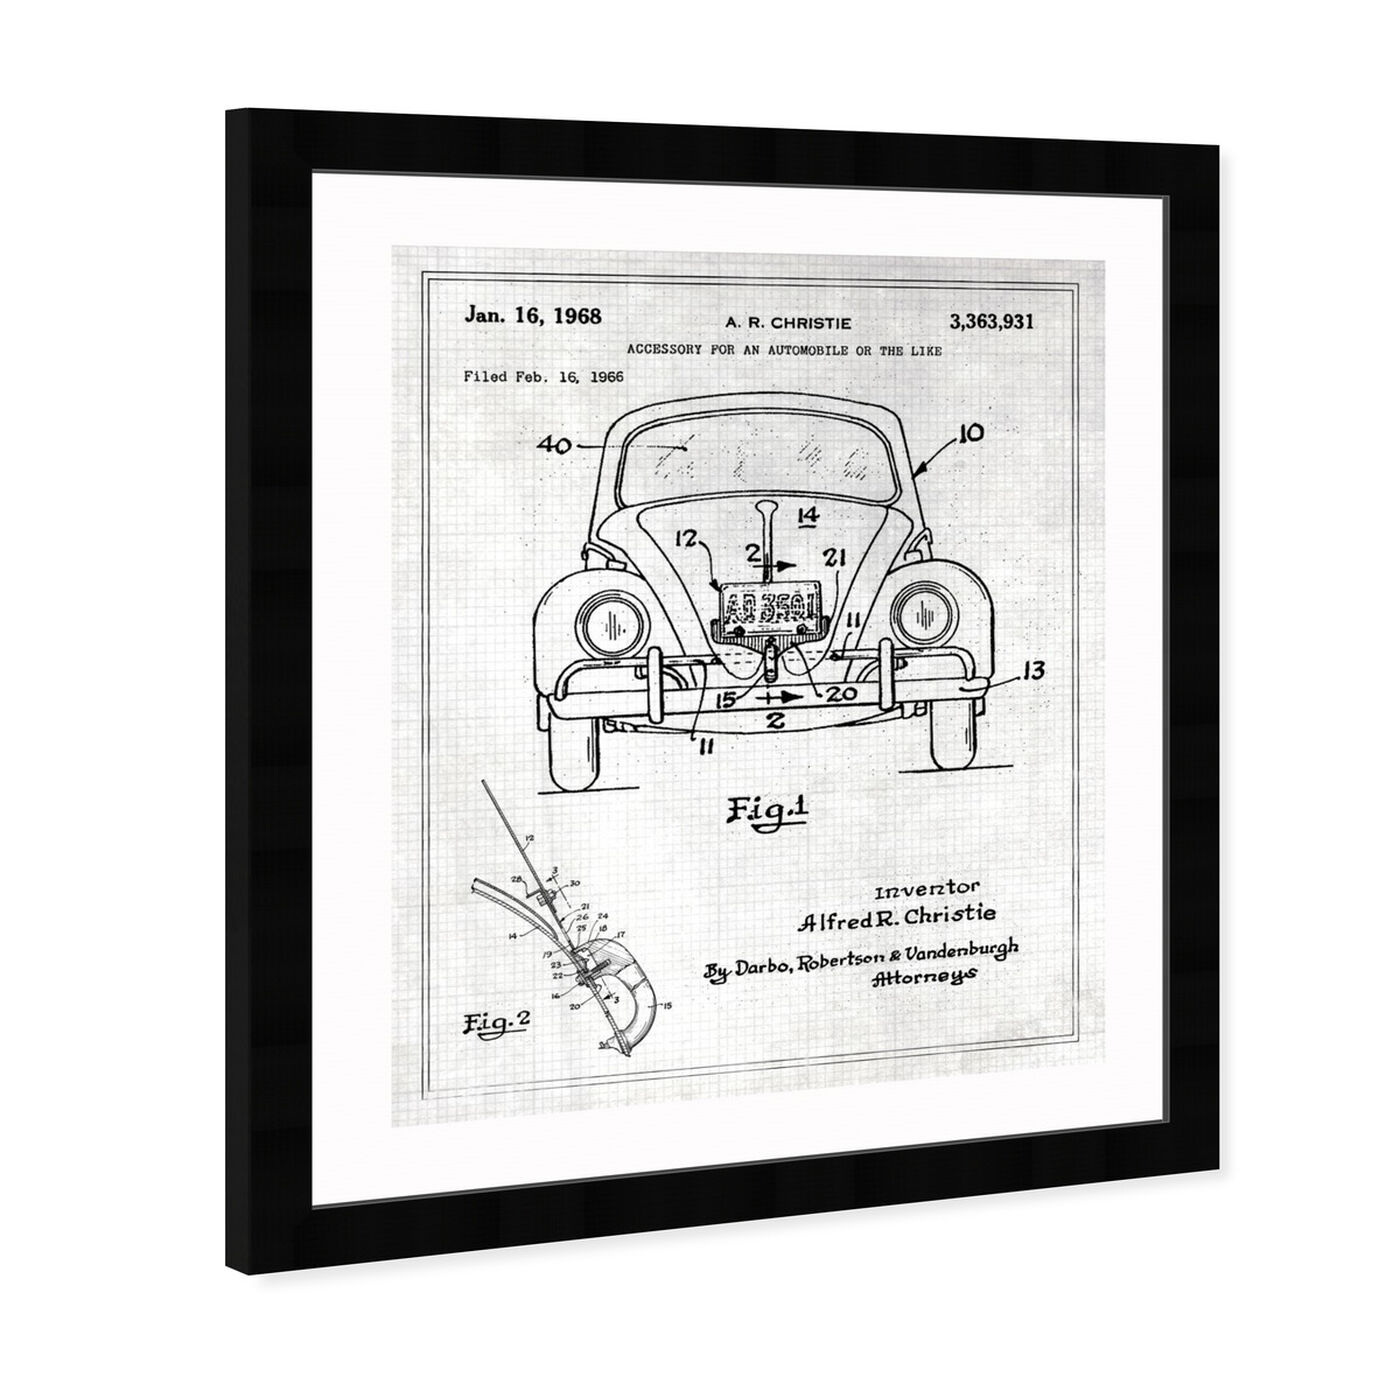 Angled view of Accessory For An Automobile 1968 featuring transportation and automobiles art.